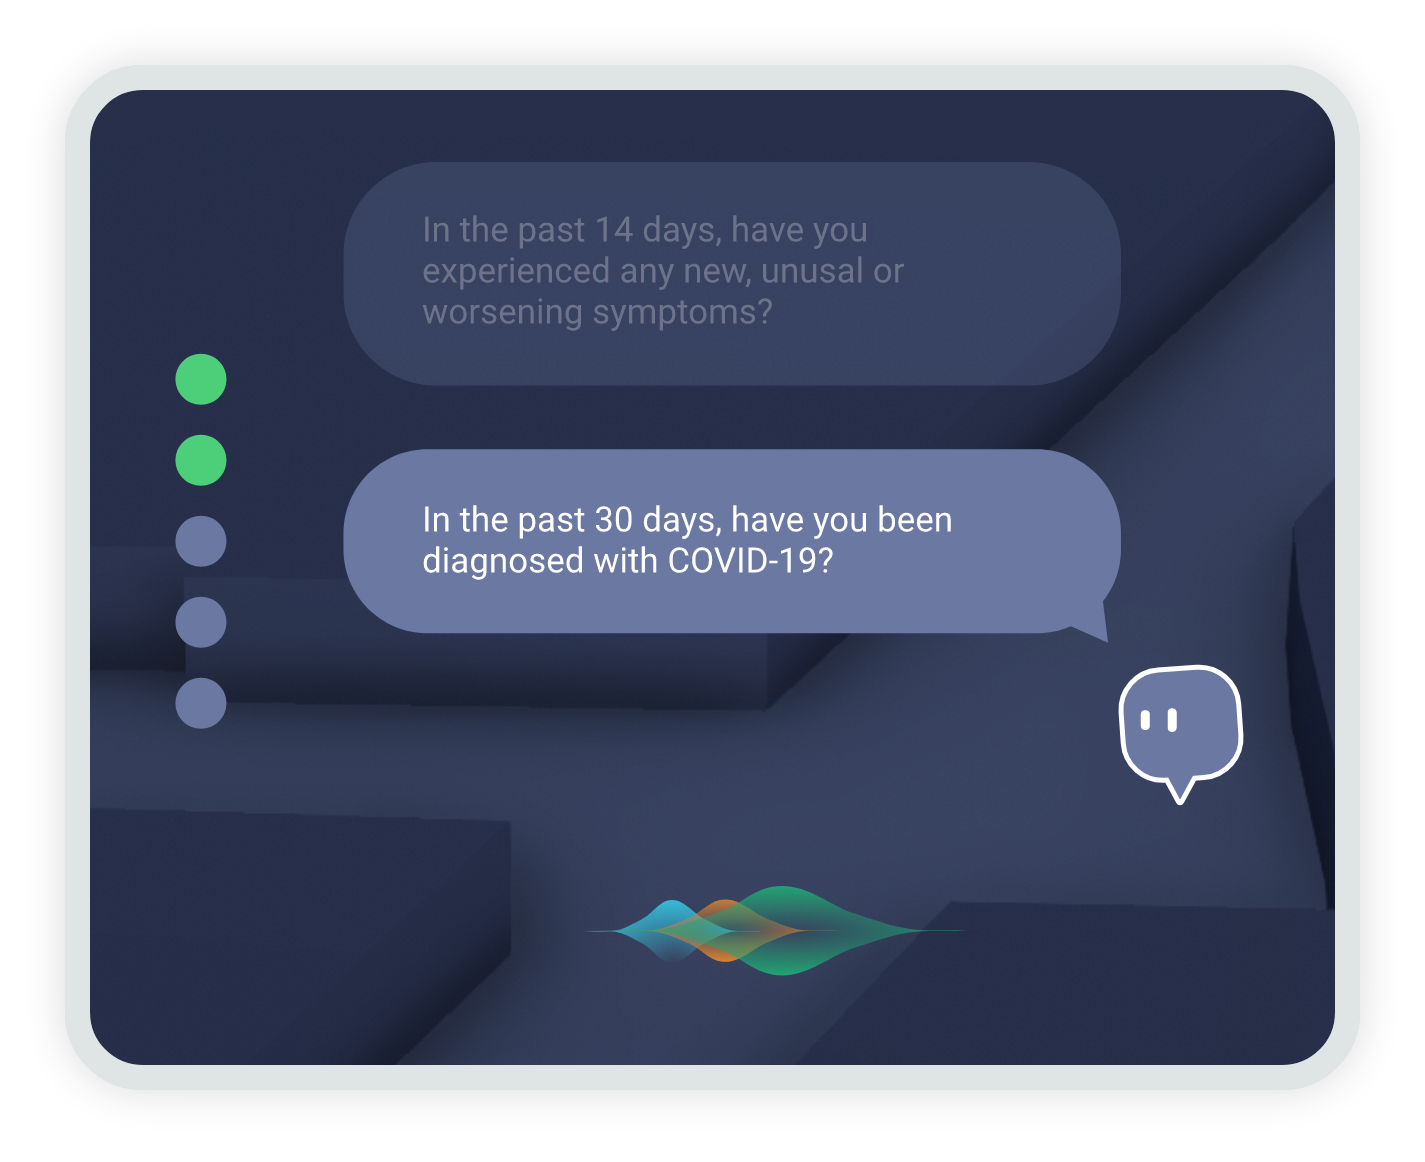 Interactive screen assistant asking COVID-19 survey questions.